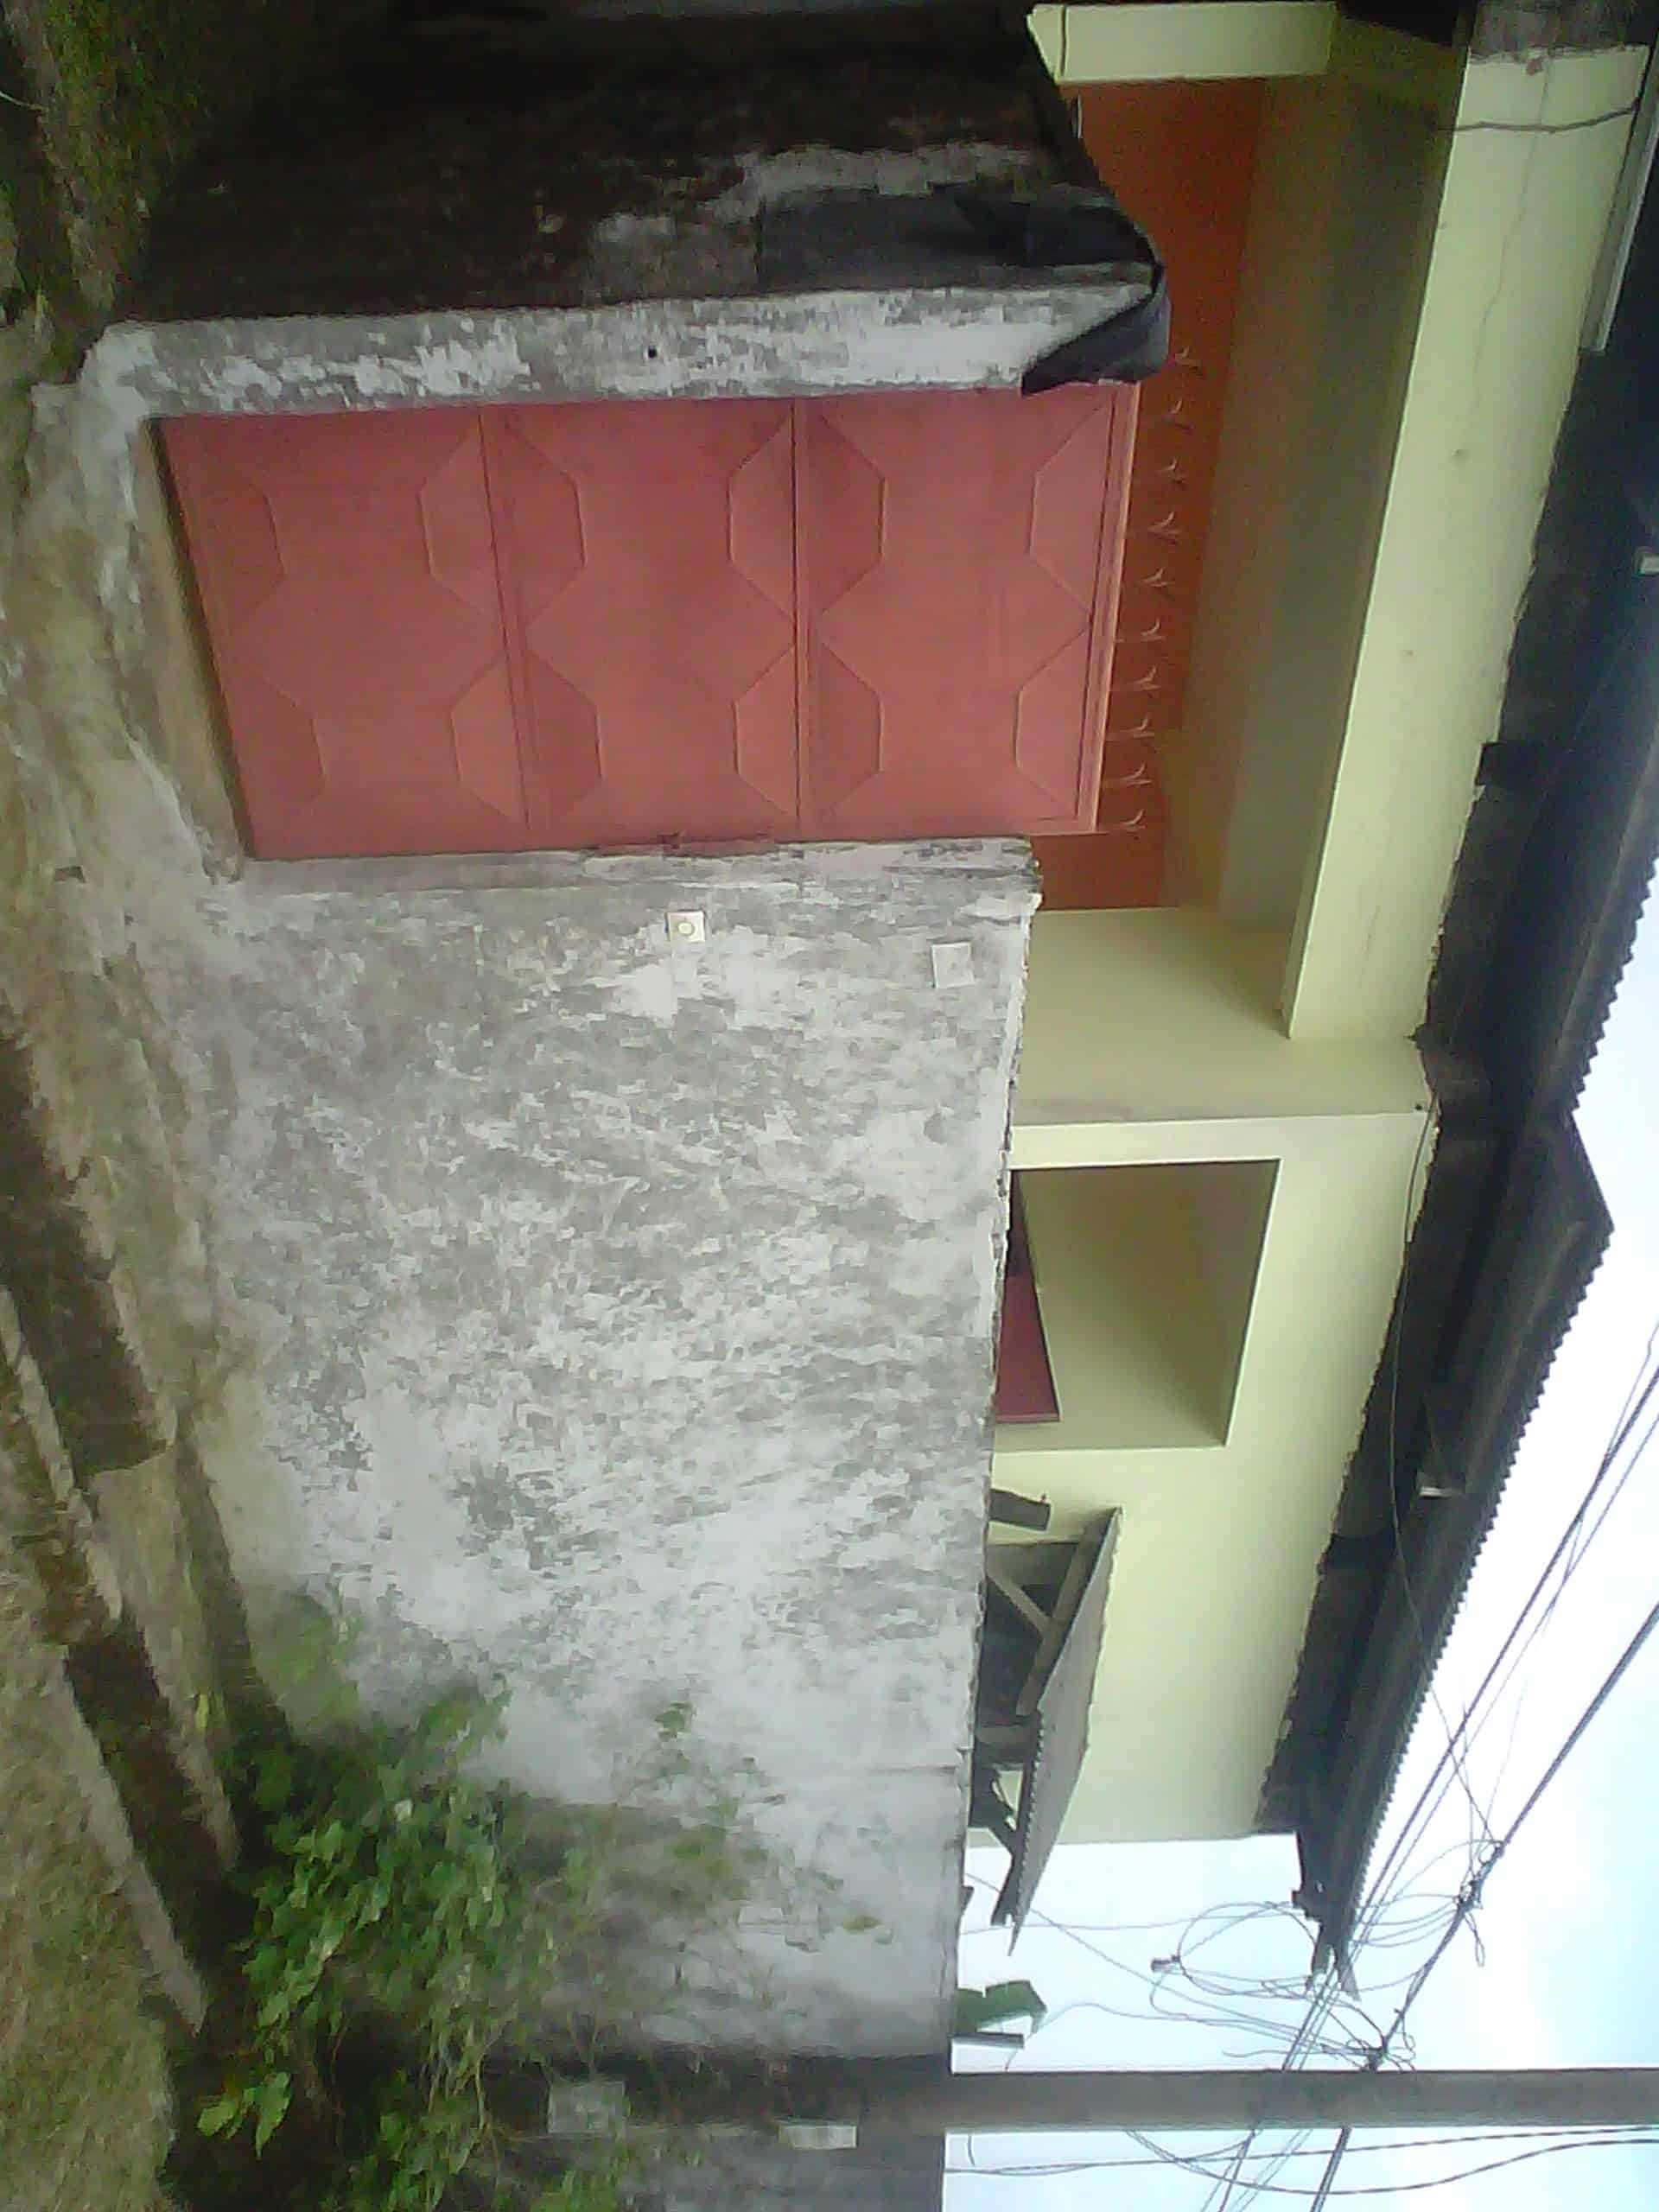 Land for sale at Douala, Logbaba, totale - 200 m2 - 15 000 000 FCFA